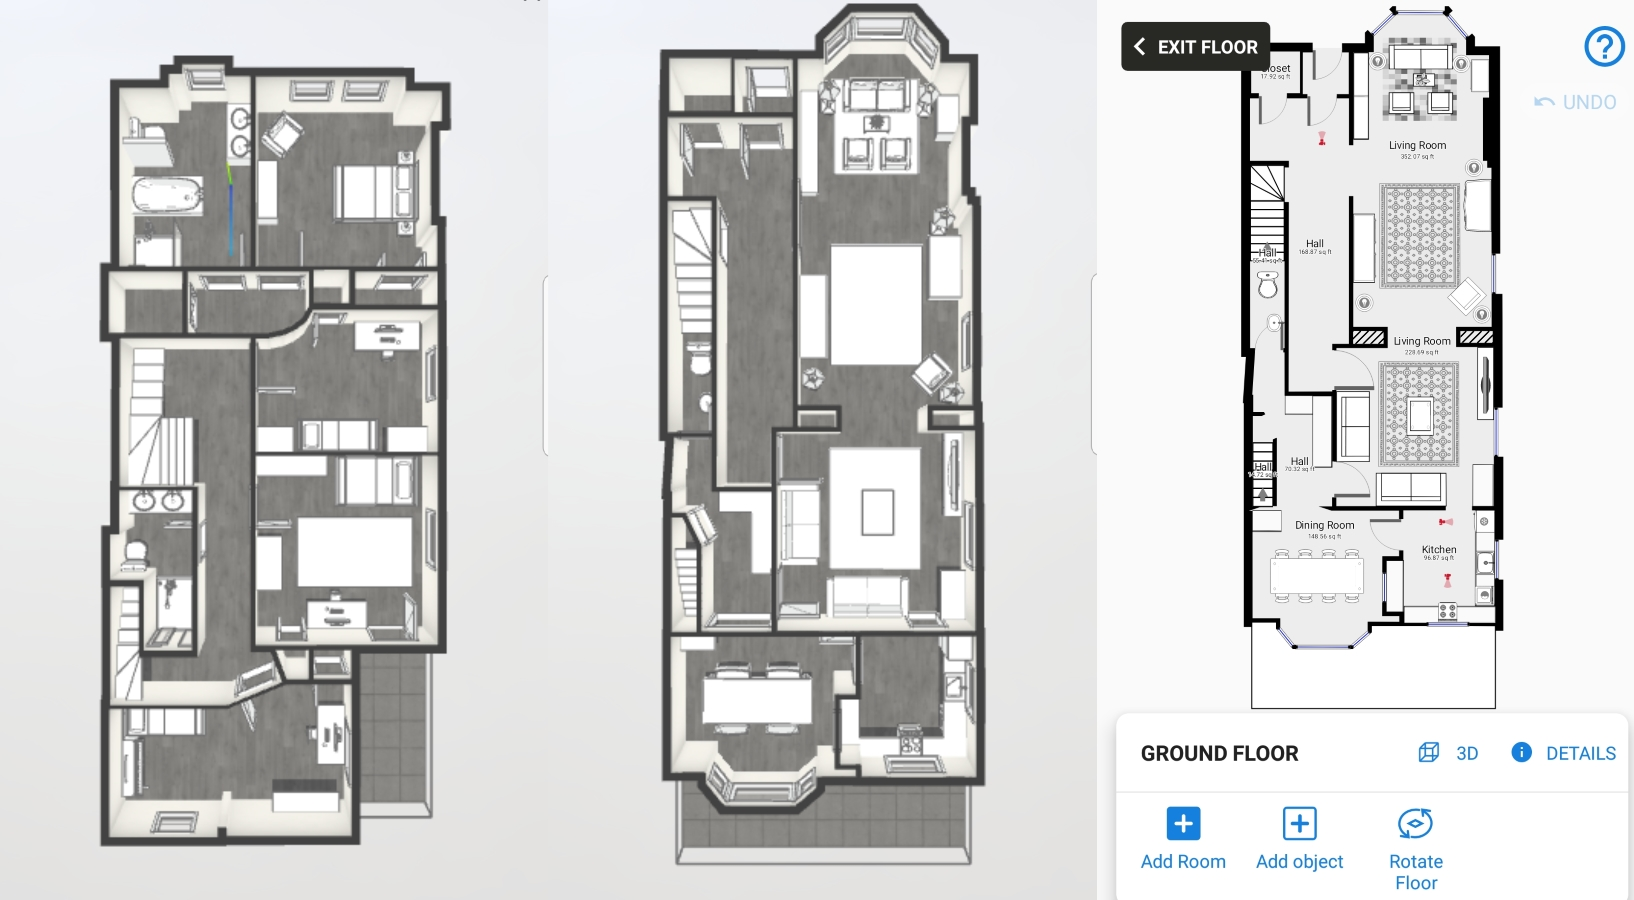 10 Best Floor Plan Apps For Android Iphone And Ipad Slashdigit